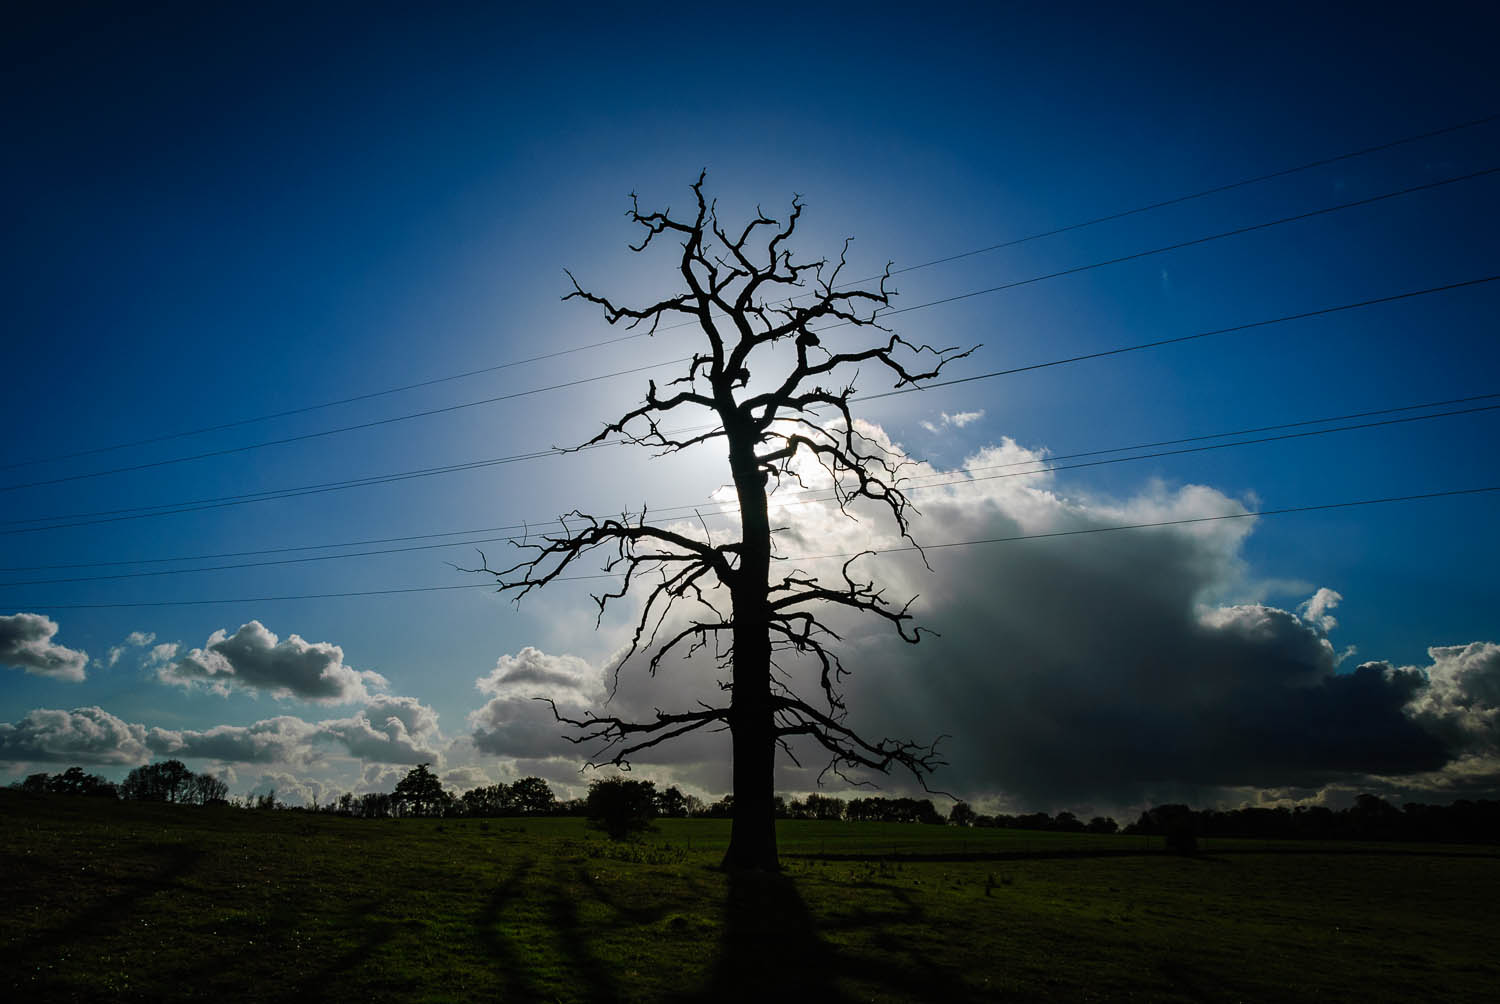 Electrified Tree Silhouette